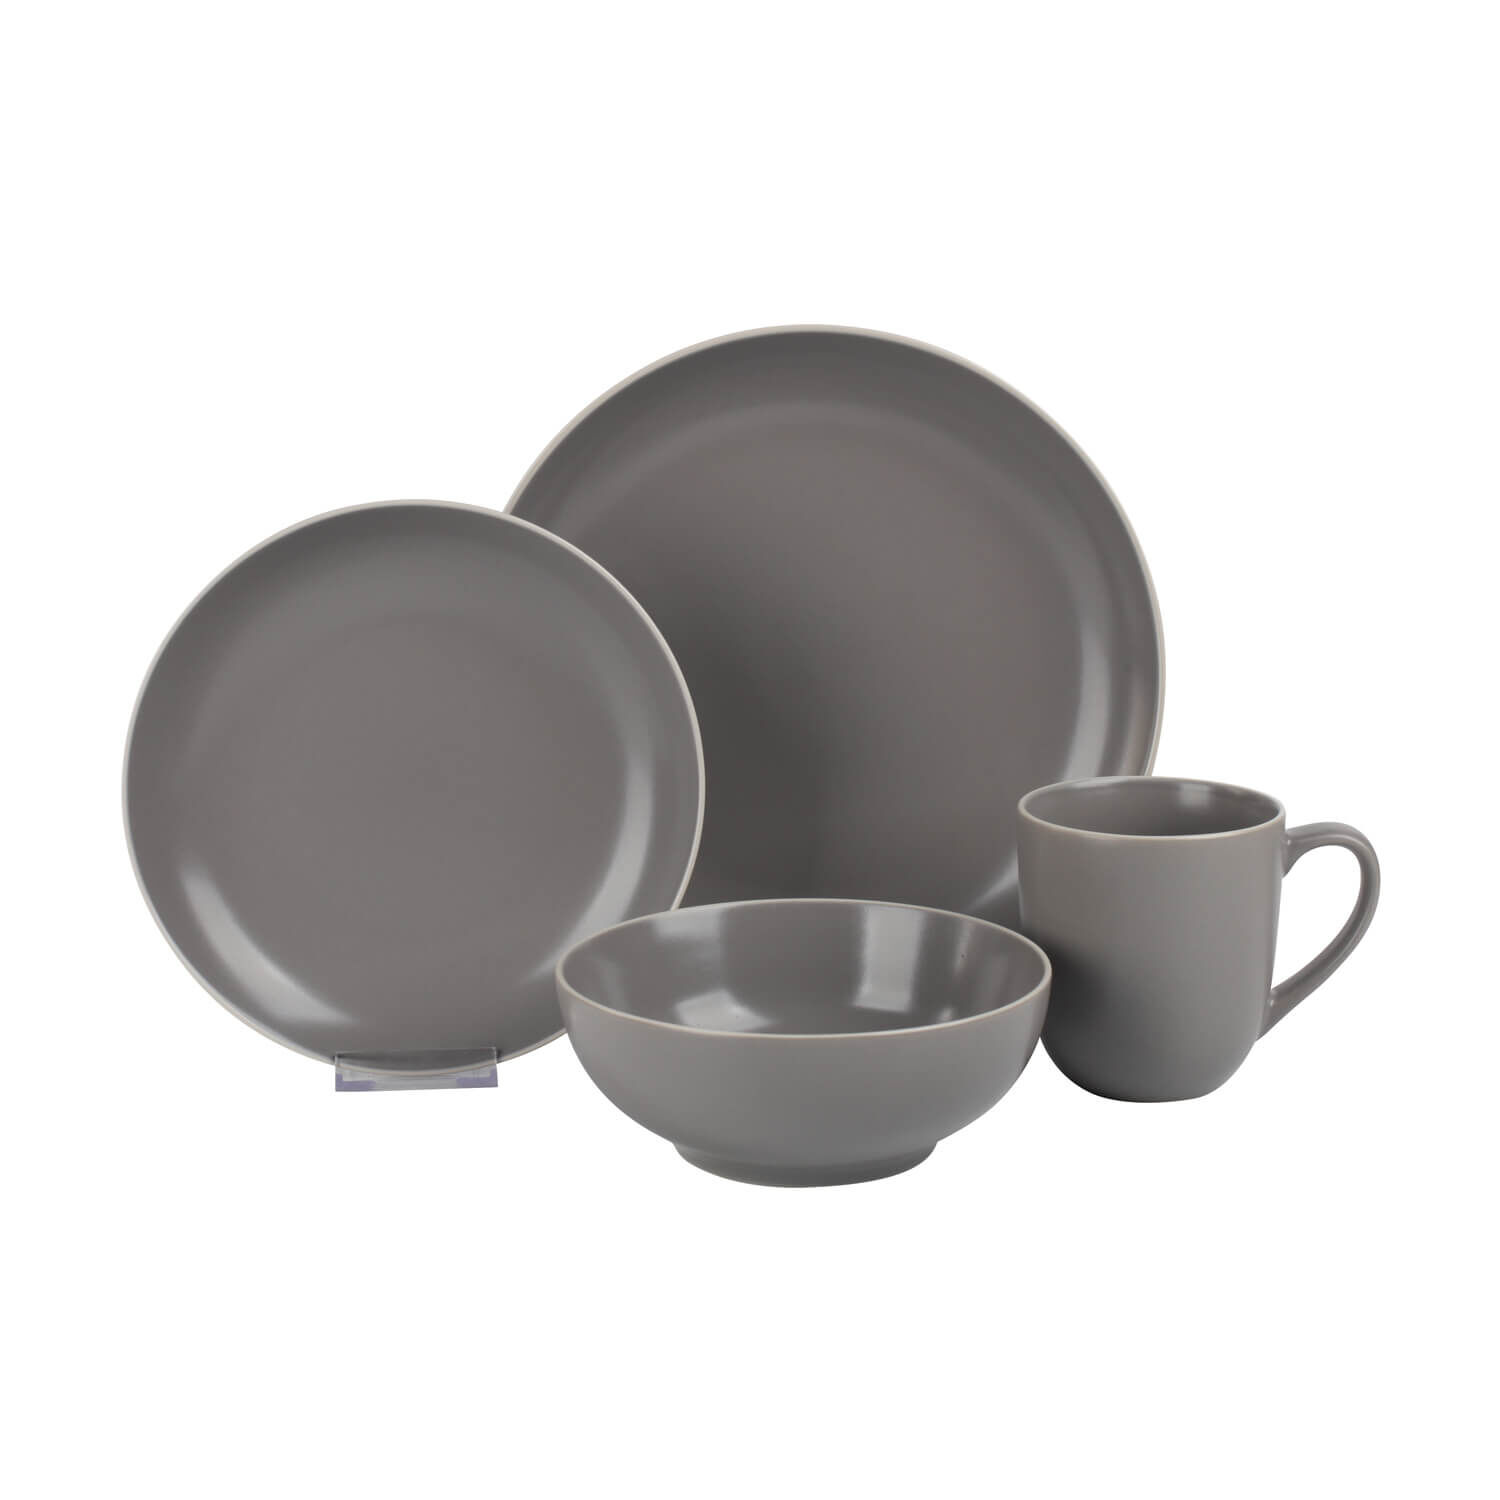 Wensley Stone 16 Piece Dinner Set  sc 1 st  Homestore and More & Dinnerware Sets - Home Store + More